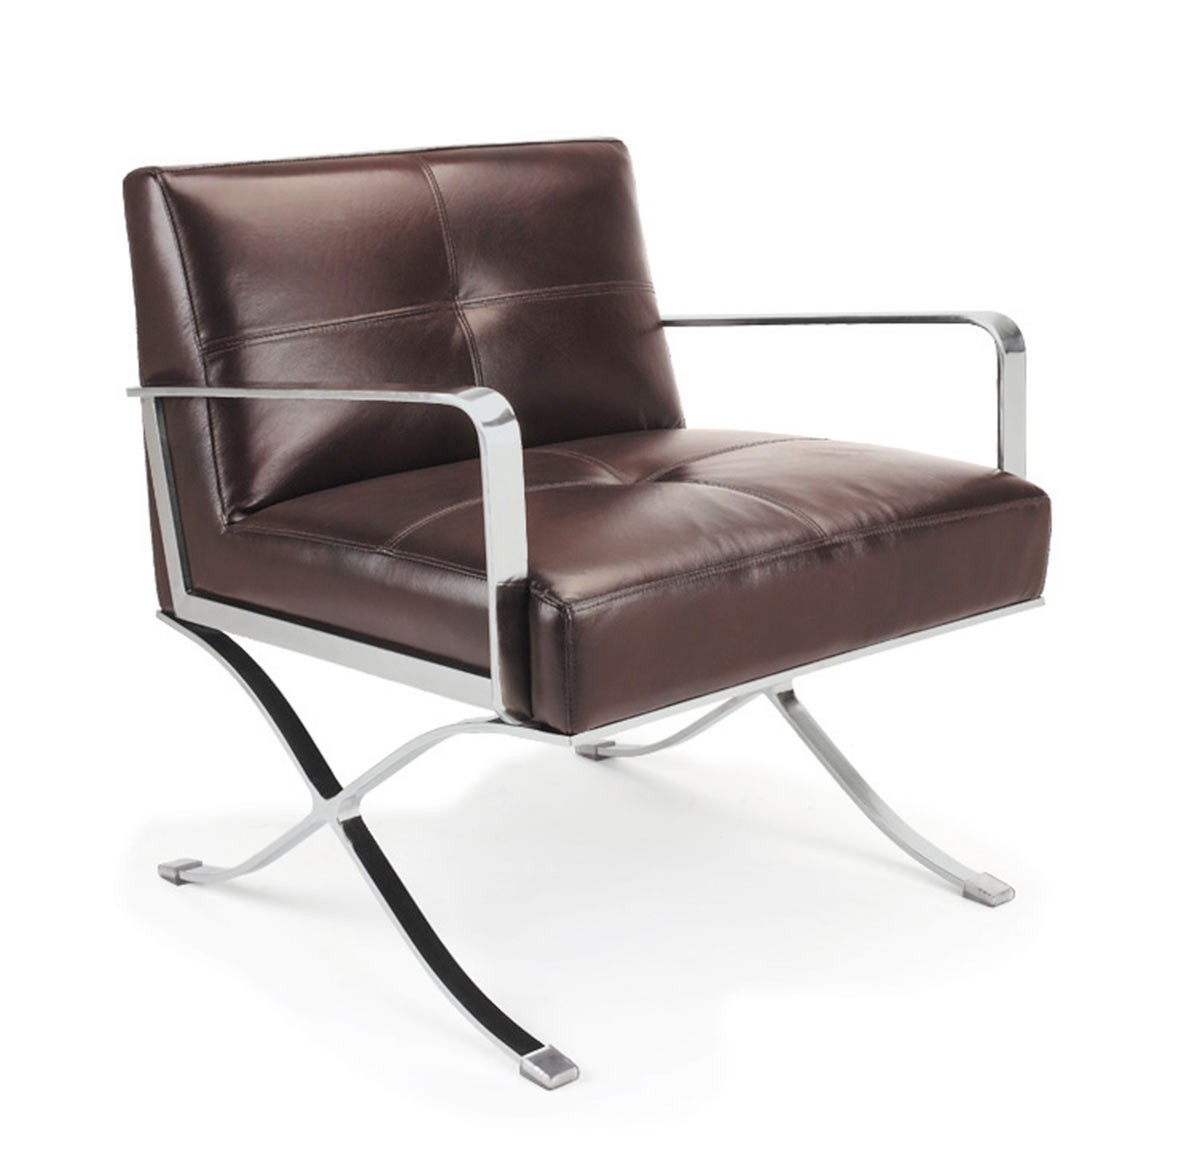 Divani casa ec 011 modern leather lounge chair for Modern leather club chairs